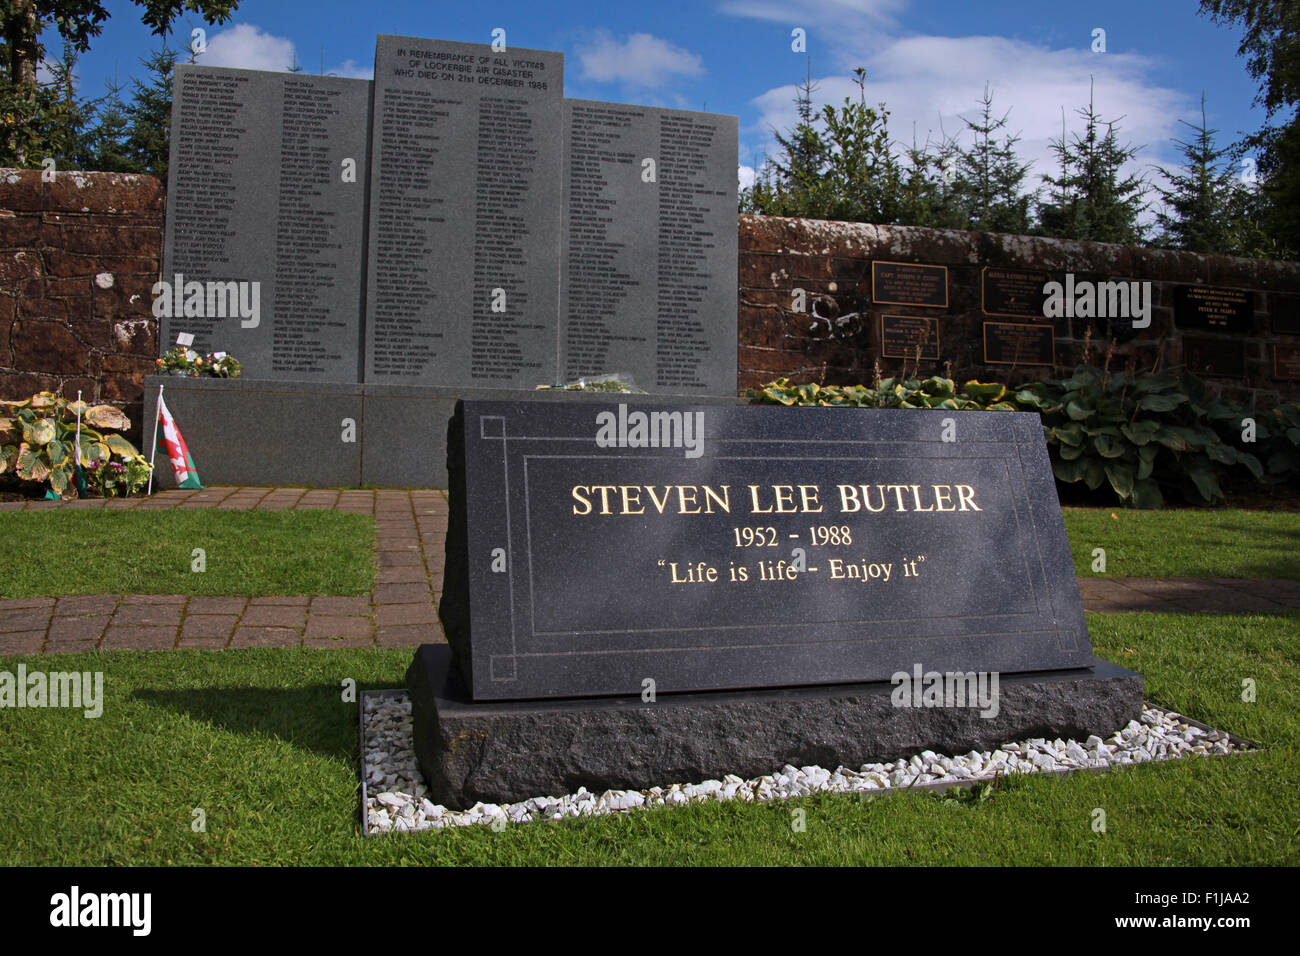 Steven Lee Butler - Life Is Life Enjoy It,Scotland,Lodge,Visitors,Centre,DLVC,Trust,Lockerbie,Memorial,Scotland,Victims,Pan,Am,PanAm,flight,103,bomb,bombing,terrorist,December,1988,attack,crash,dead,site,21/12/1988,270,victims,Scottish,Town,conspiracy,blast,Tundergarth,Room,garden,of,New York,GoTonySmith,Lodge,Visitors,Centre,DLVC,Trust,Lockerbie,Memorial,Scotland,Victims,Pan,Am,PanAm,flight,103,bomb,bombing,terrorist,December,1988,attack,crash,dead,site,21/12/1988,270,victims,Scottish,Town,conspiracy,blast,Tundergarth,Room,garden,of,Dryfesdale,Cemetery,news,Cultural,understanding,remembering,innocent,transatlantic,Frankfurt,Detroit,Libyan,Libya,Colonel Muammar Gaddafi,civil,case,compensation,terrorism,PA103,30,30years,years,Syracuse,University,SU,family,collections,Story,Archive,Archives,40,35,Timeline,saga,disaster,air,Scholars,program,programs,remembrance,Clipper Maid of the Seas,N739PA,Boeing,727,plane,aircraft,Scotland,UK,United Kingdom,GB,Great Britain,resting,place,Buy Pictures of,Buy Images Of,New York,al megrahi,30 Years